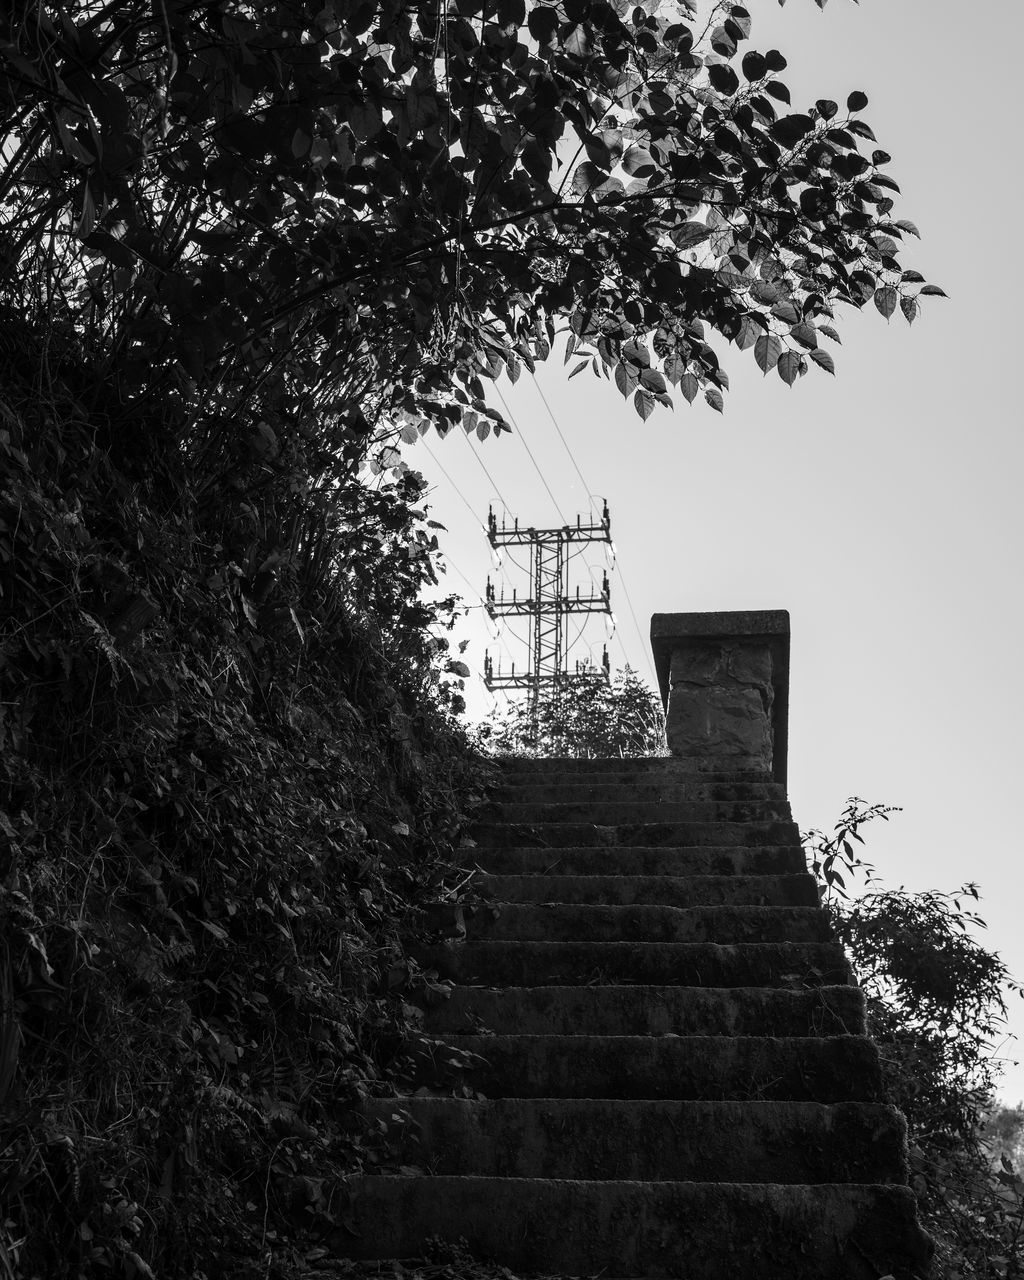 tree, low angle view, steps, growth, steps and staircases, staircase, architecture, built structure, outdoors, day, no people, nature, sky